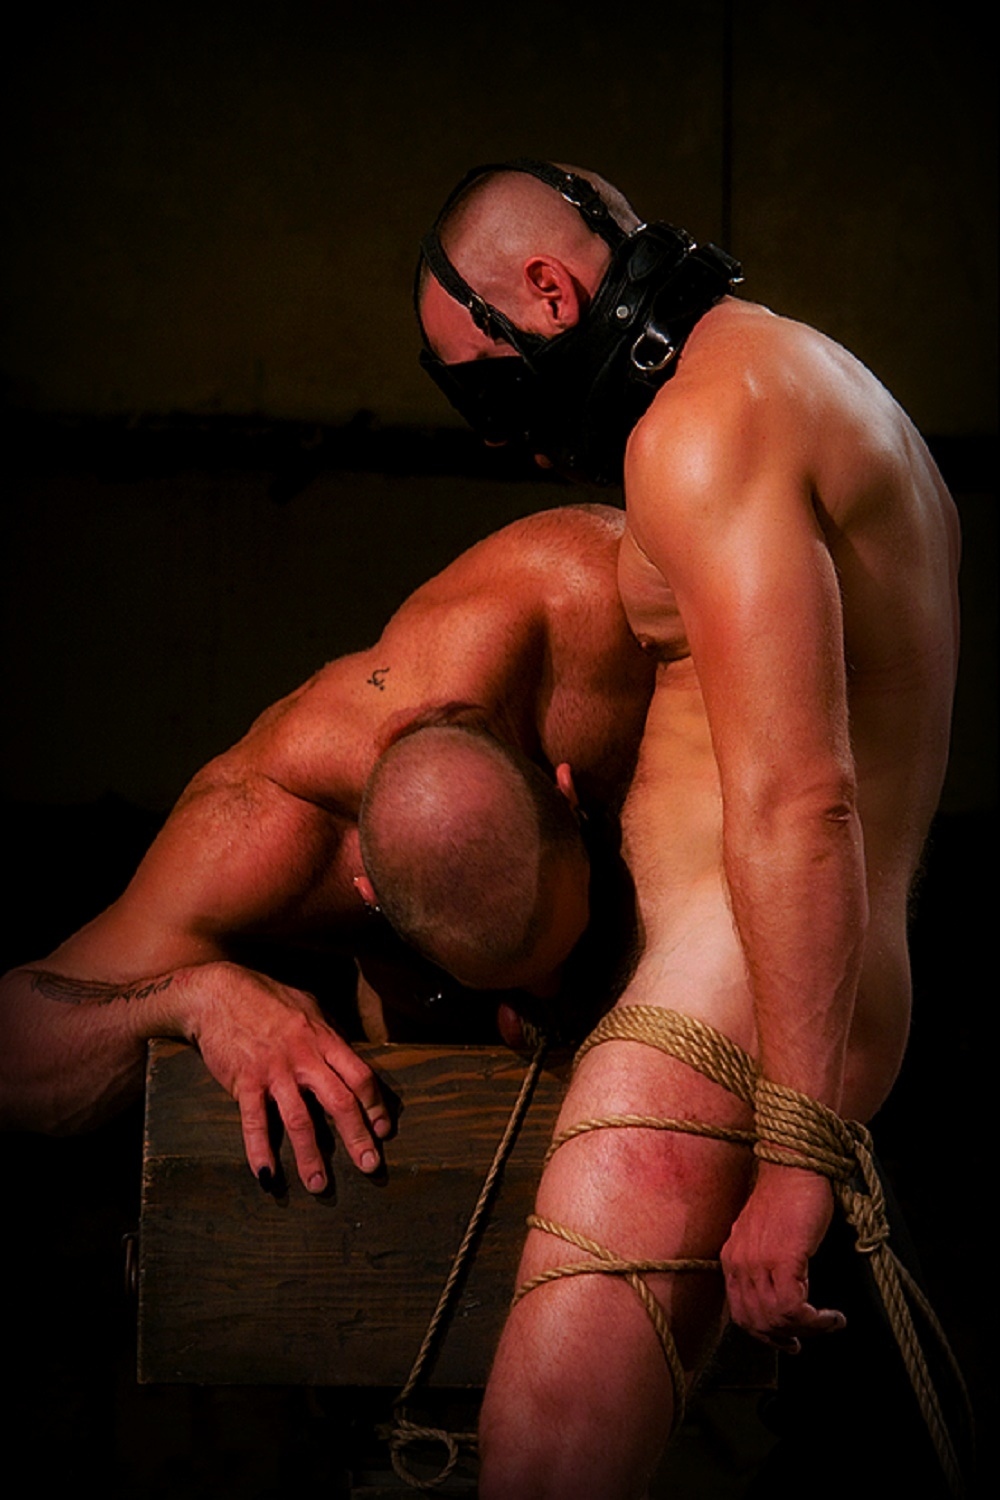 Bound and gagged gay porn